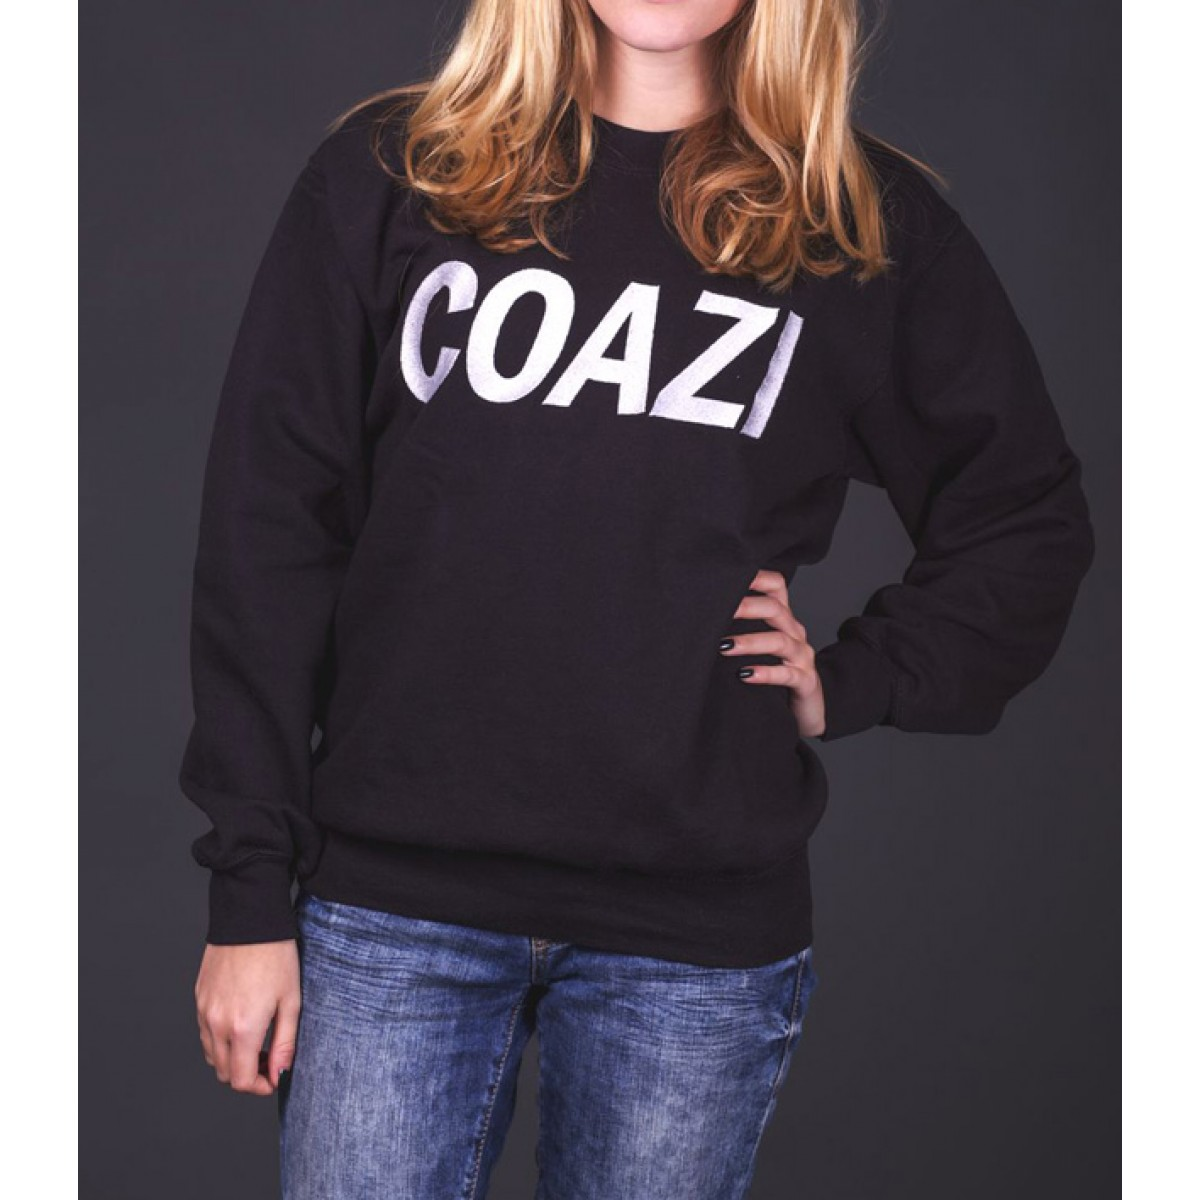 Coazi Label Sweater Black Female